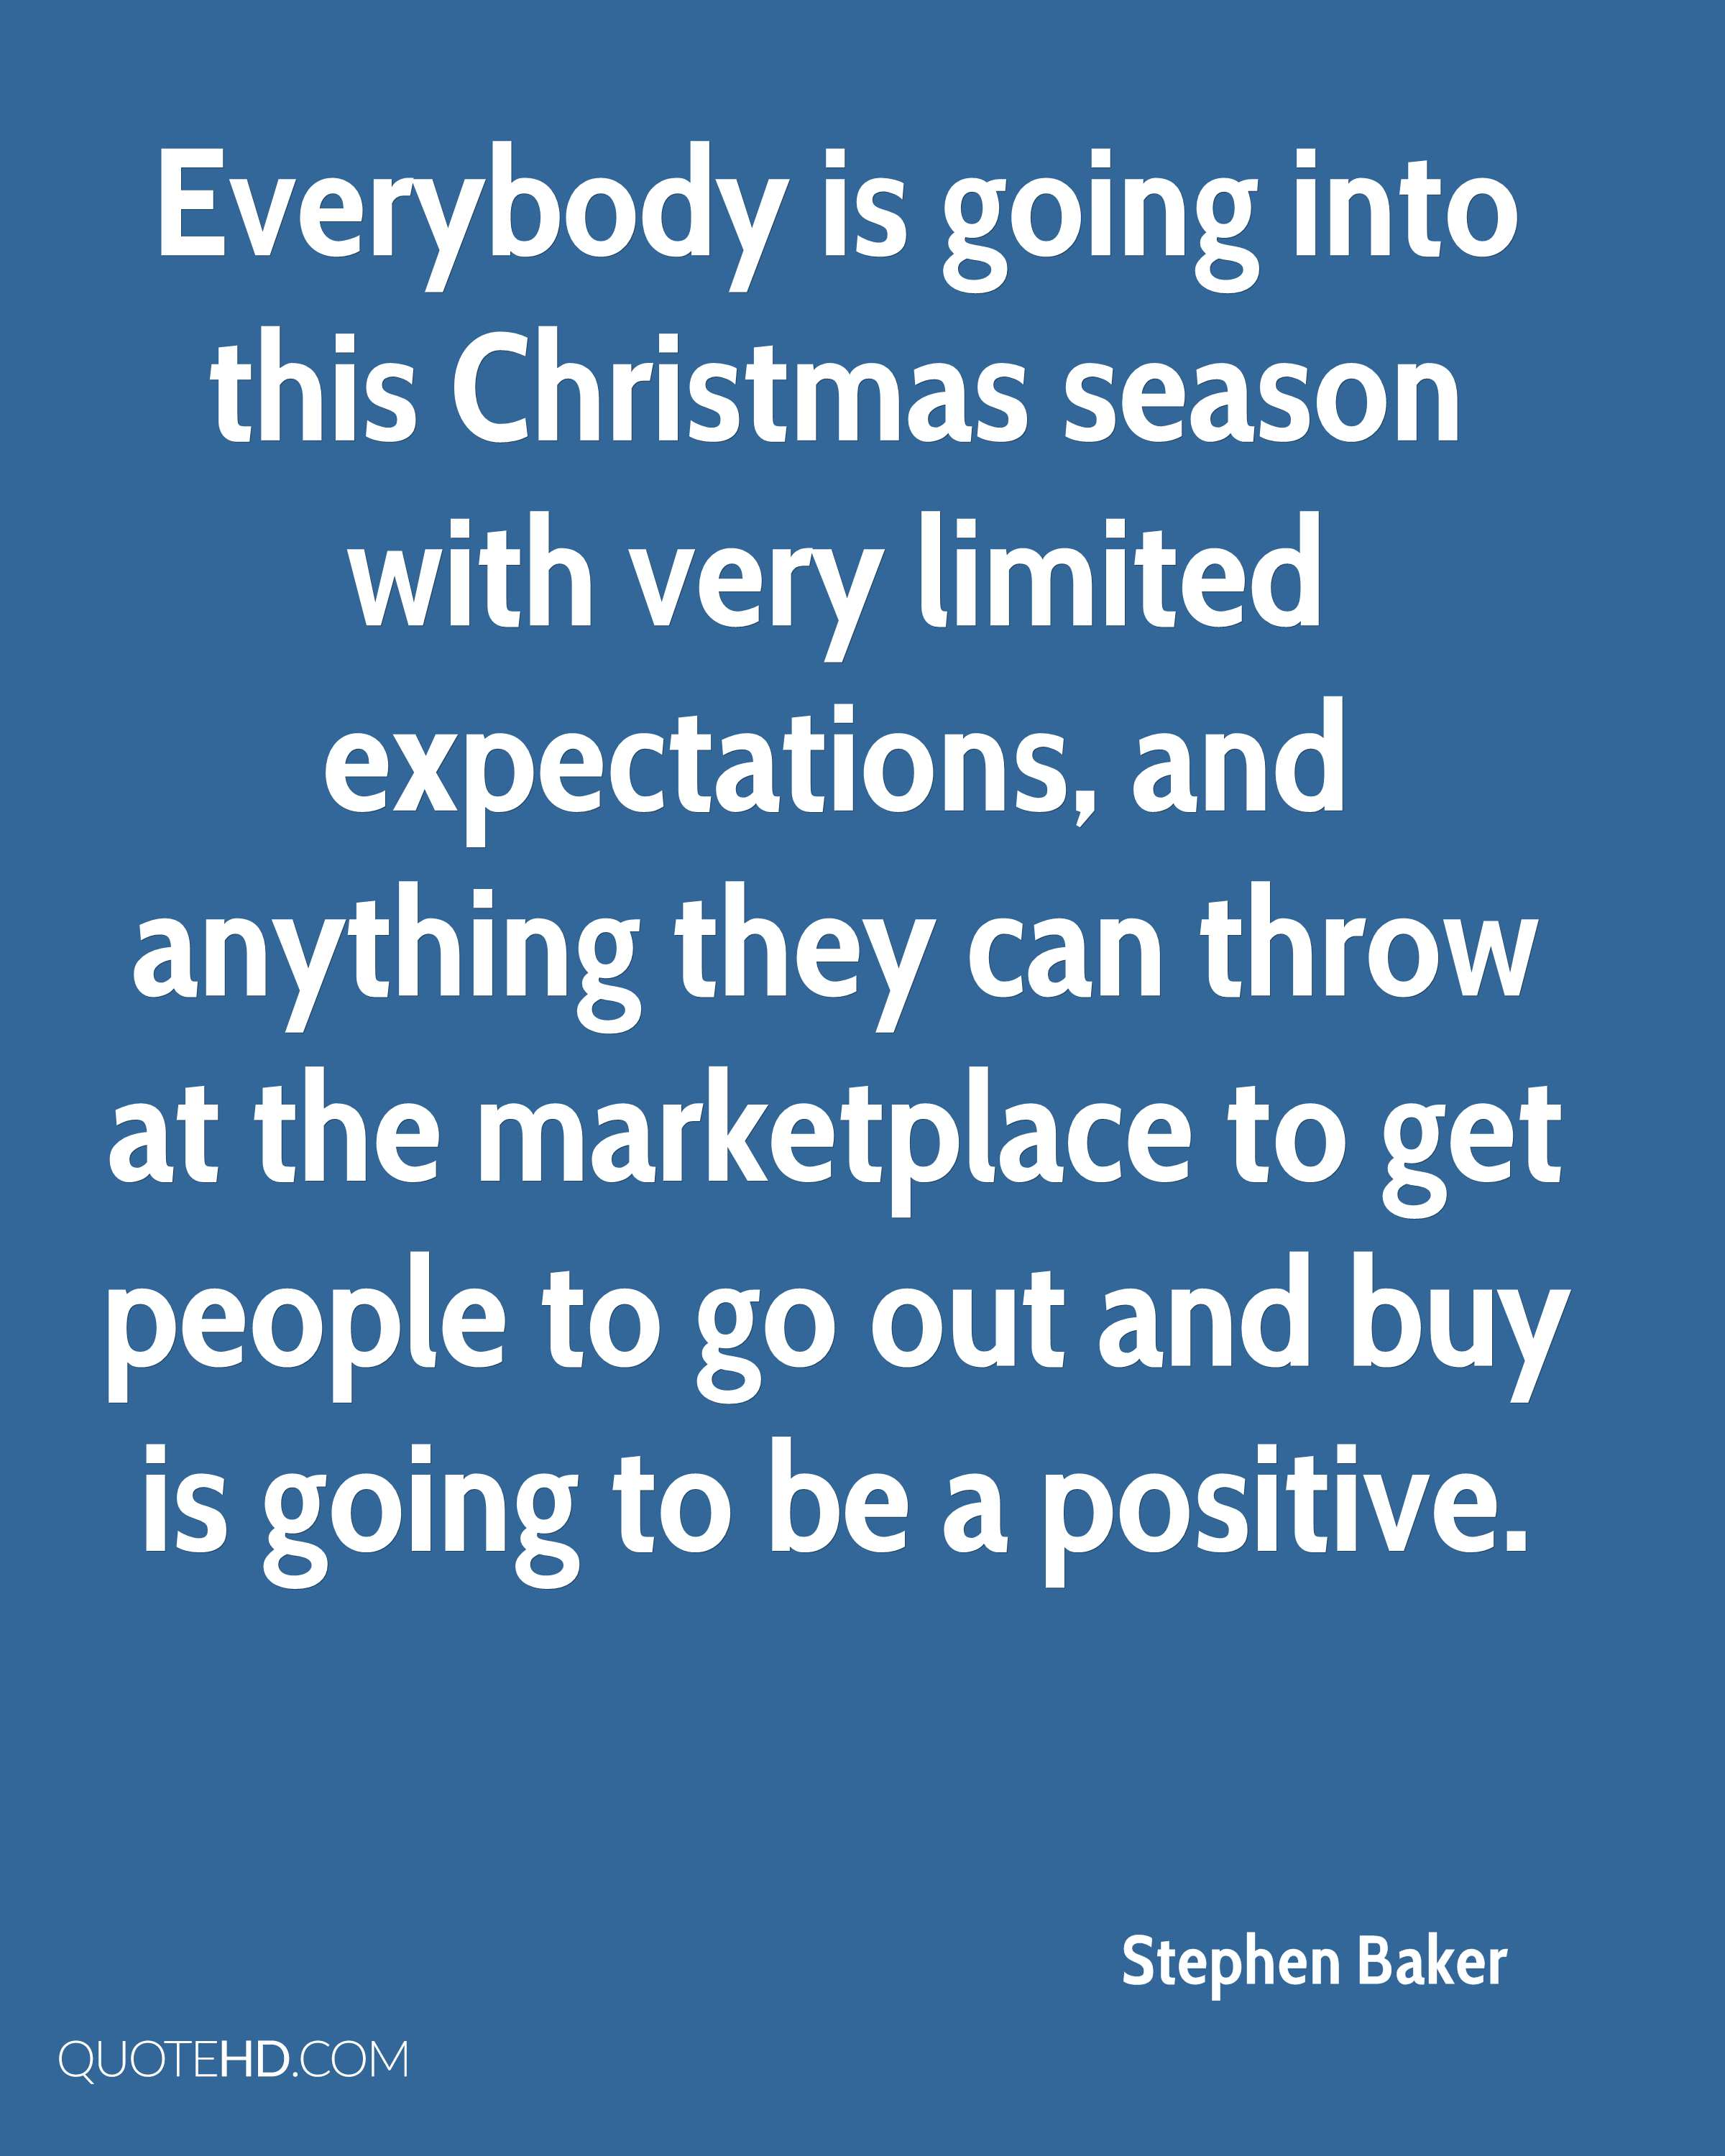 Everybody is going into this Christmas season with very limited expectations, and anything they can throw at the marketplace to get people to go out and buy is going to be a positive.